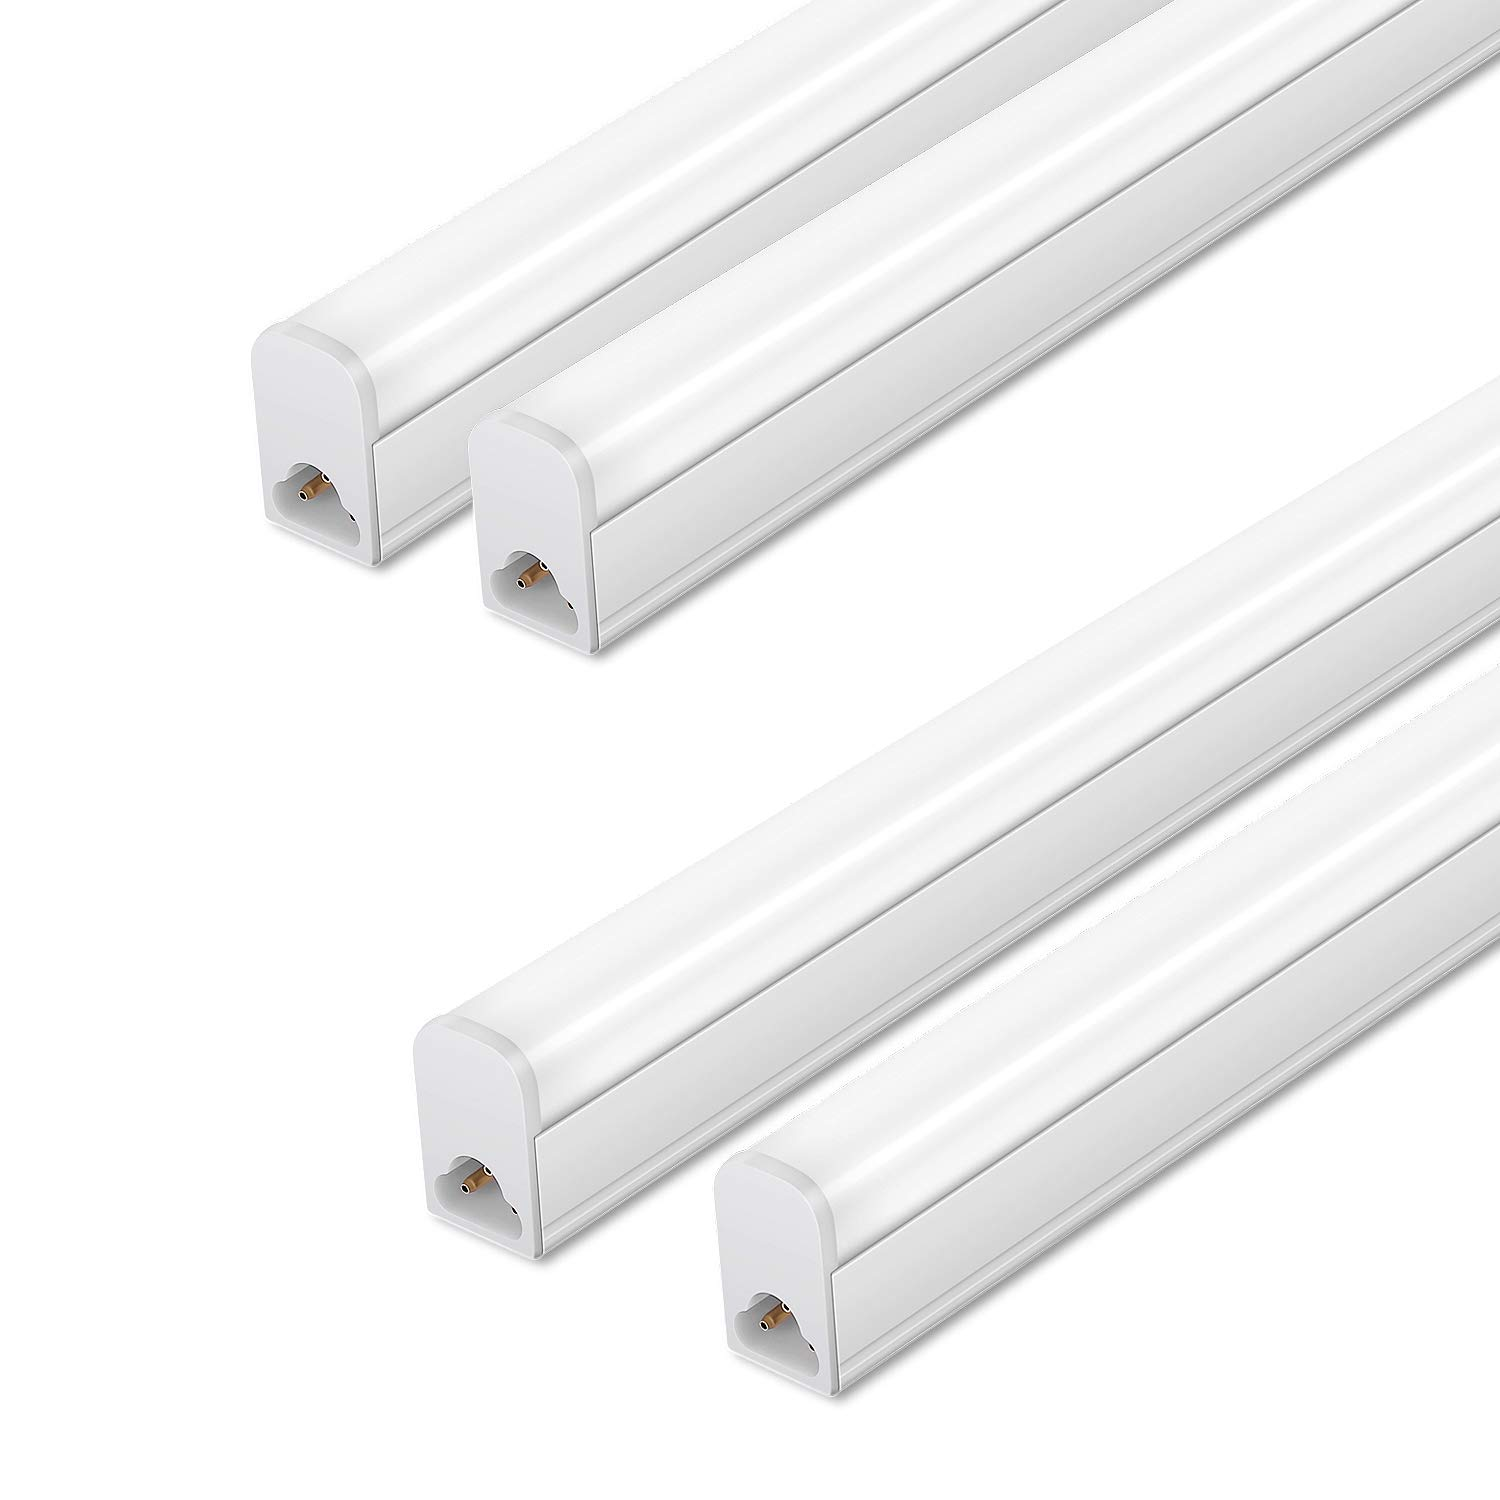 (Pack of 4) LED T5 Integrated Single Fixture,3FT,15W,6500K,1500lm, Linkable Utility Shop Lights, LED Ceiling & Under Cabinet Light, T5 T8 Fluorescent Tube Light Fixture Replacement by GDL HOME